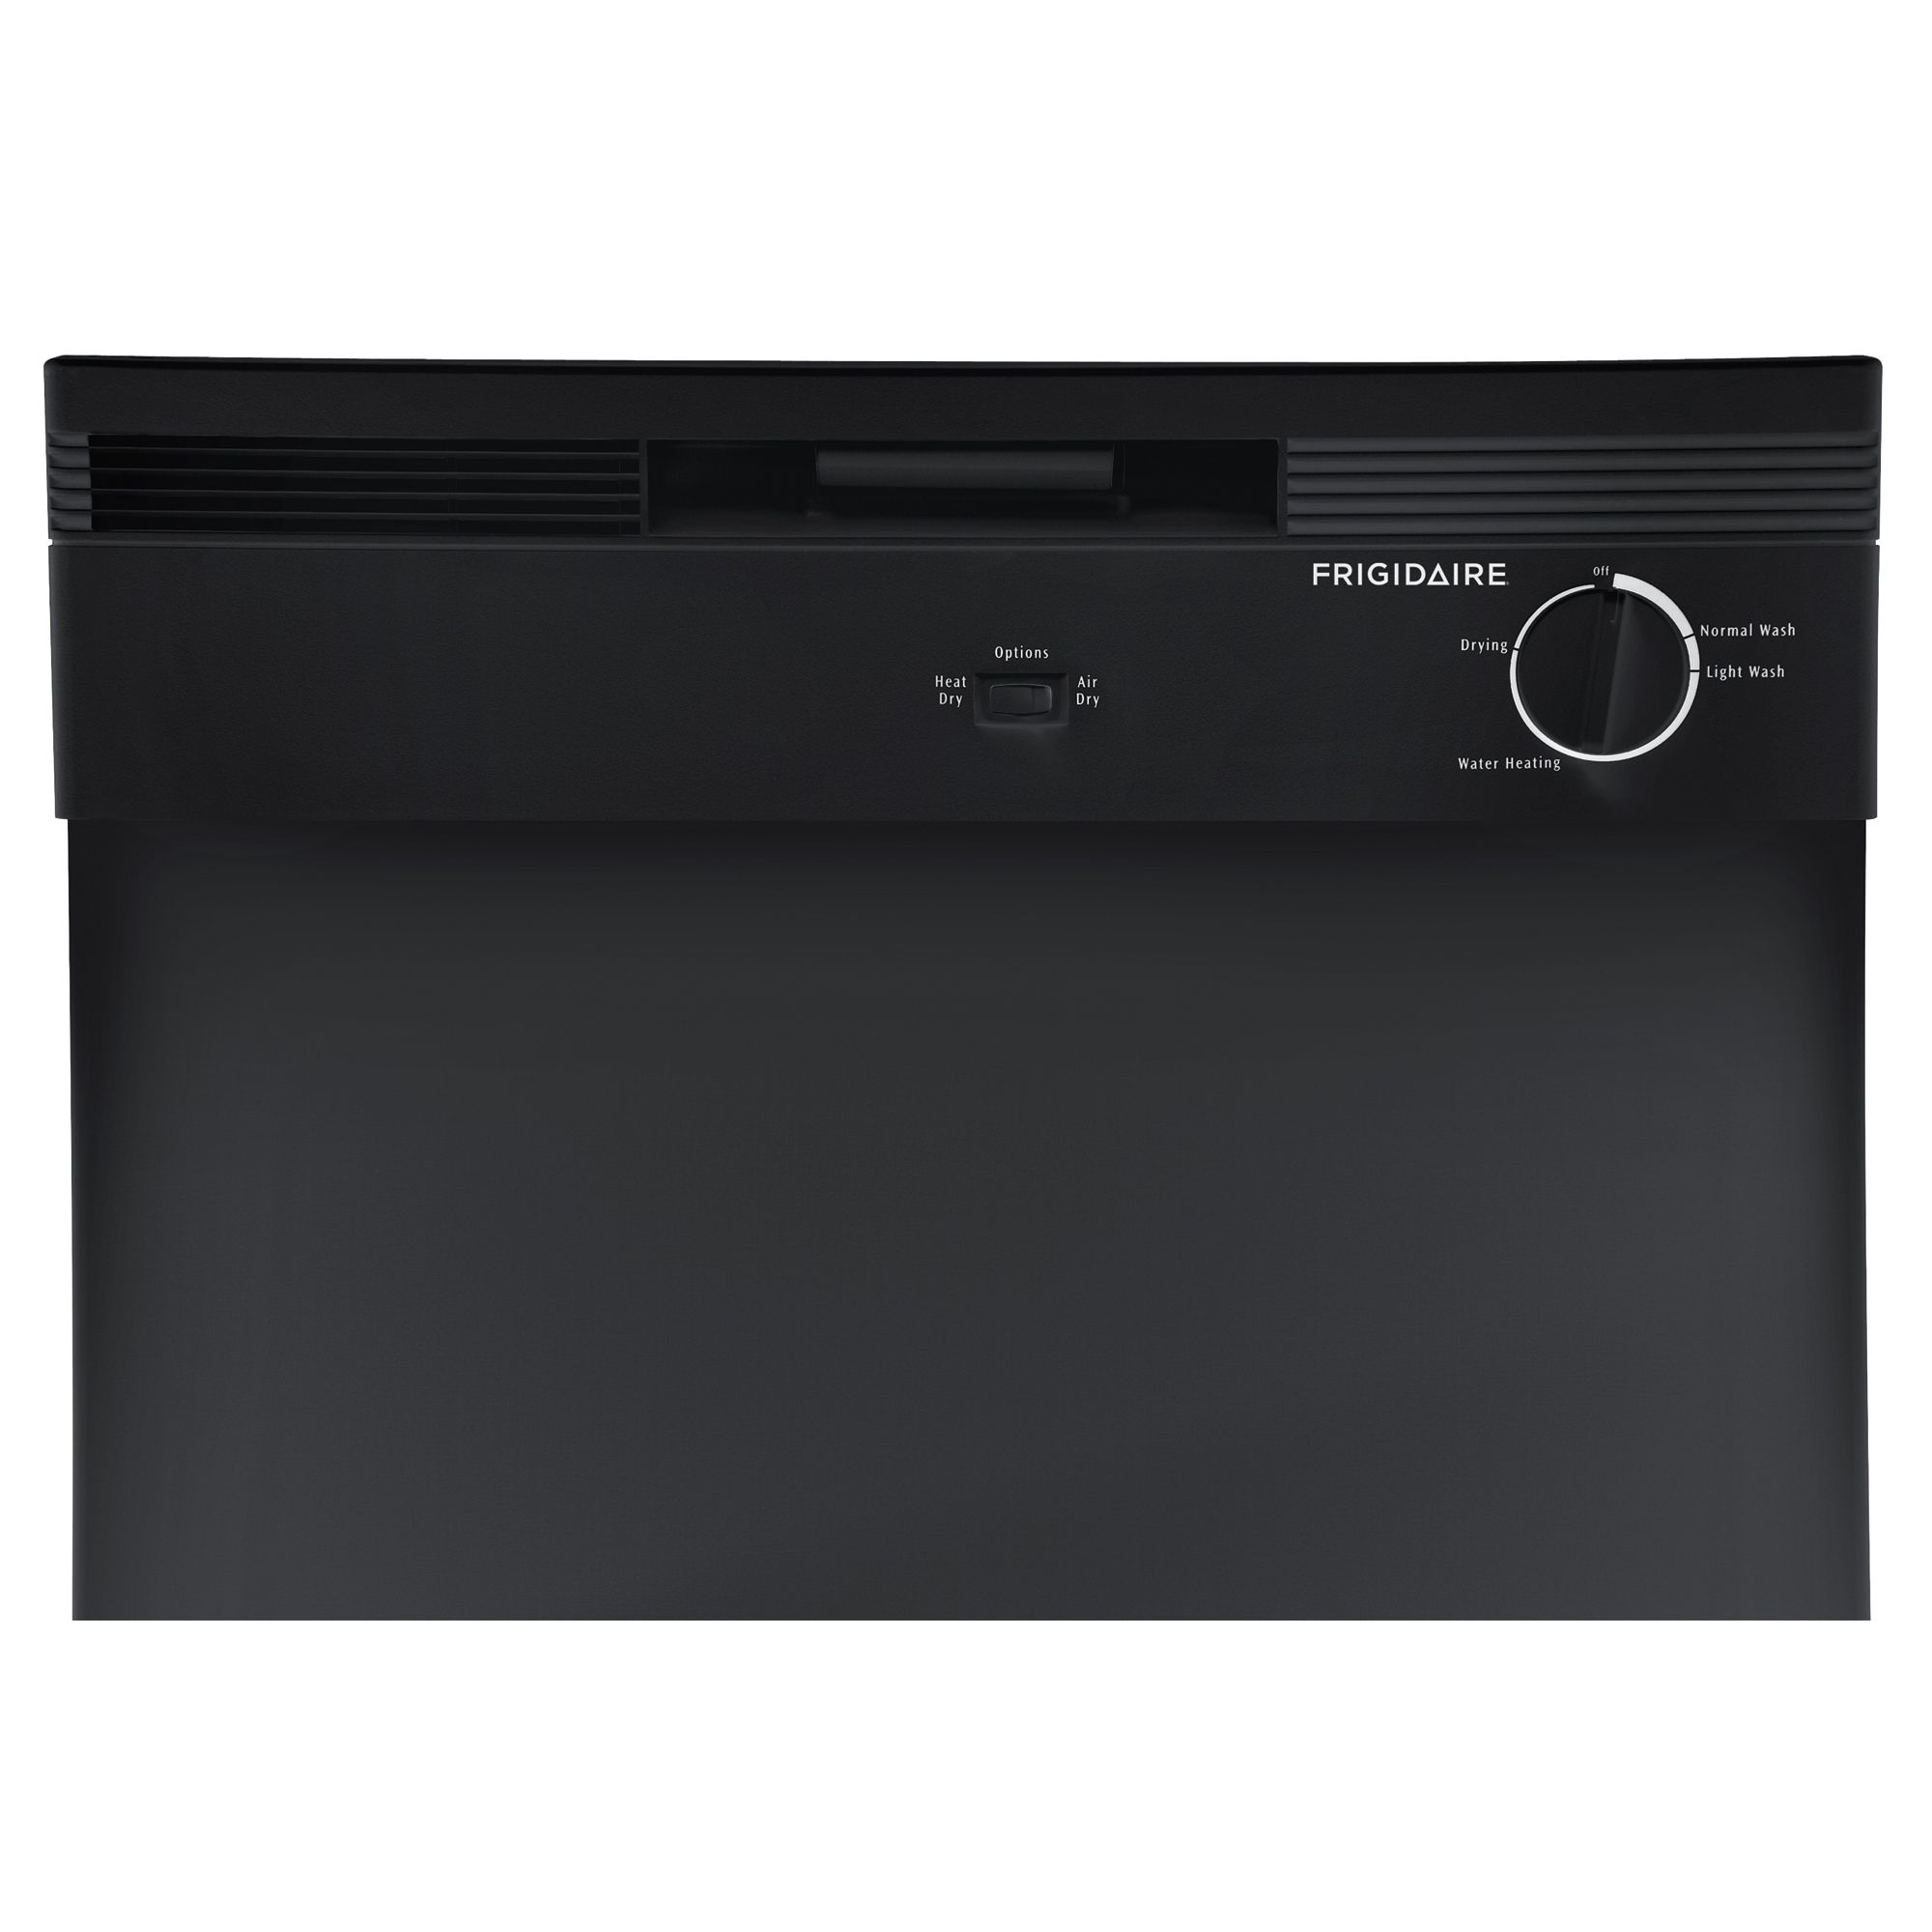 "Frigidaire FBD2400KB 24"" Built-In Dishwasher - Black"